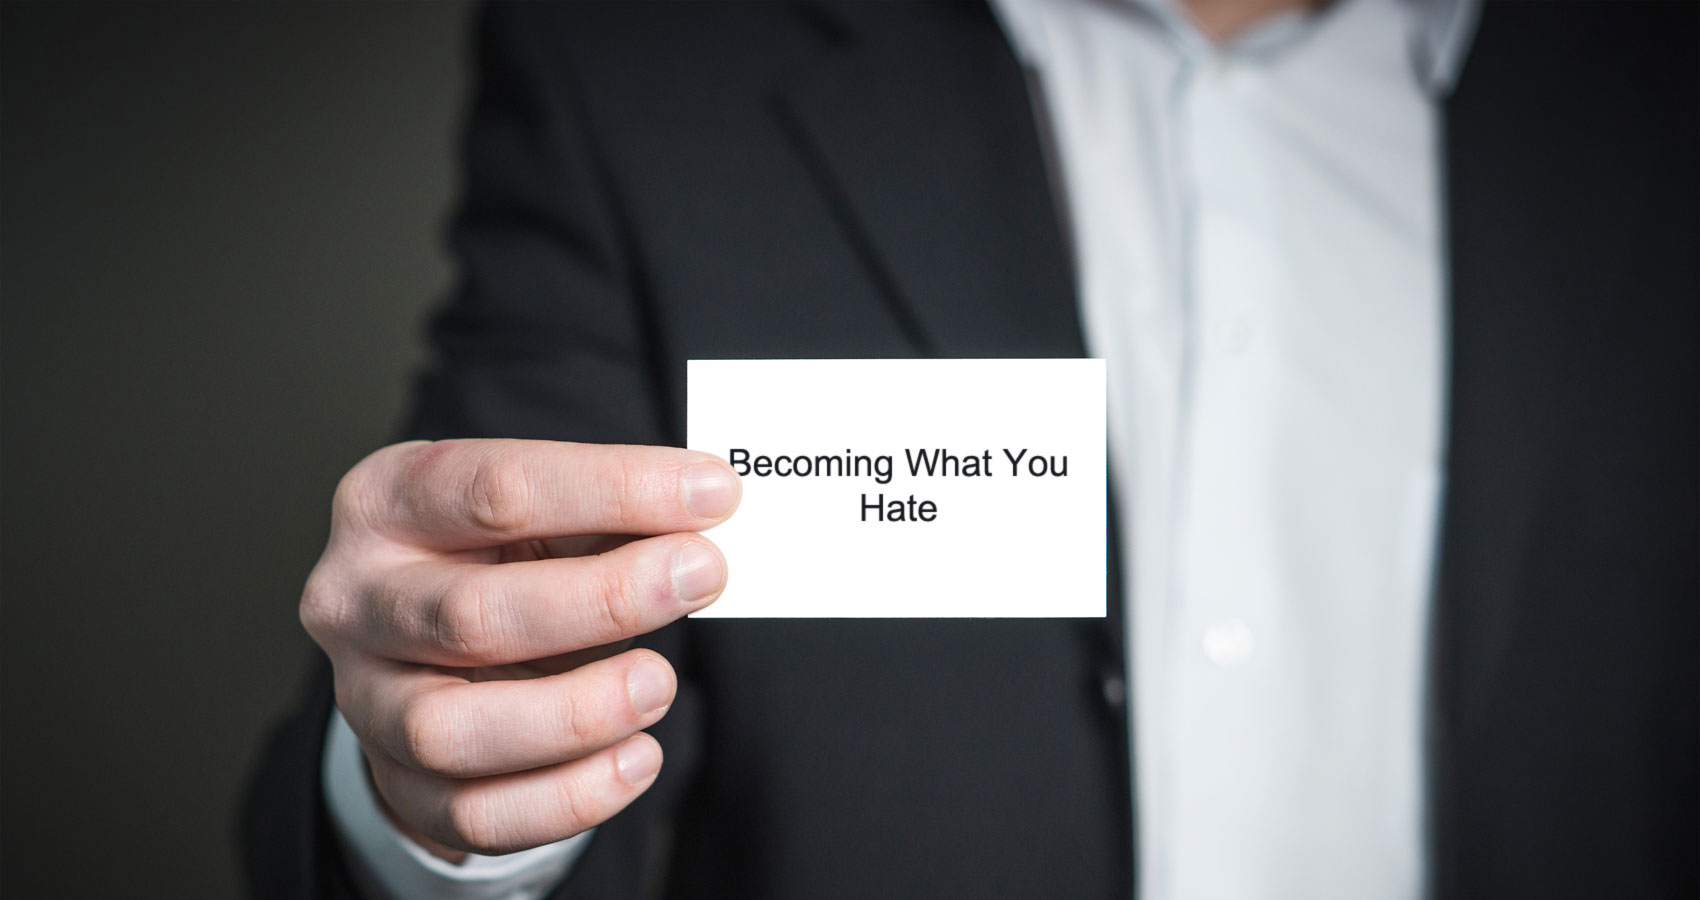 Becoming What You Hate, written by Beth Tremaglio at Spillwords.com